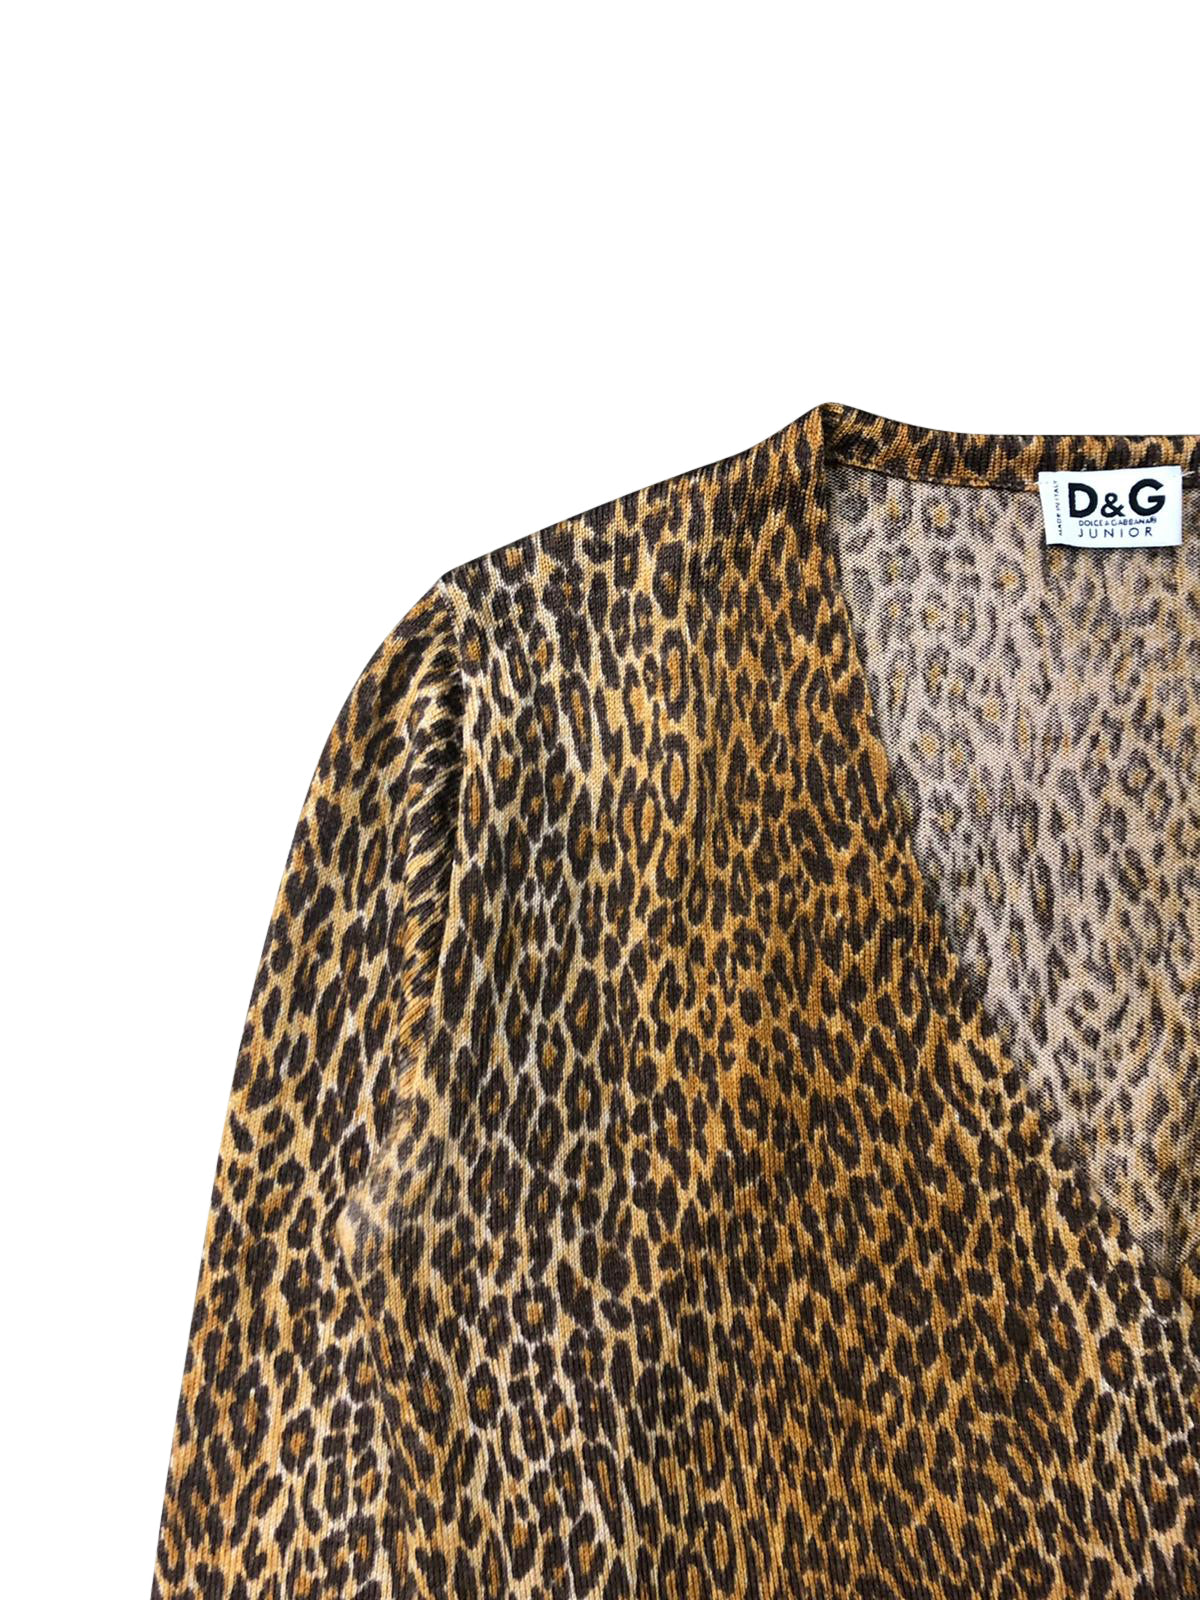 Dolce and Gabbana Wrap Around Top (Multi) UK 8-12